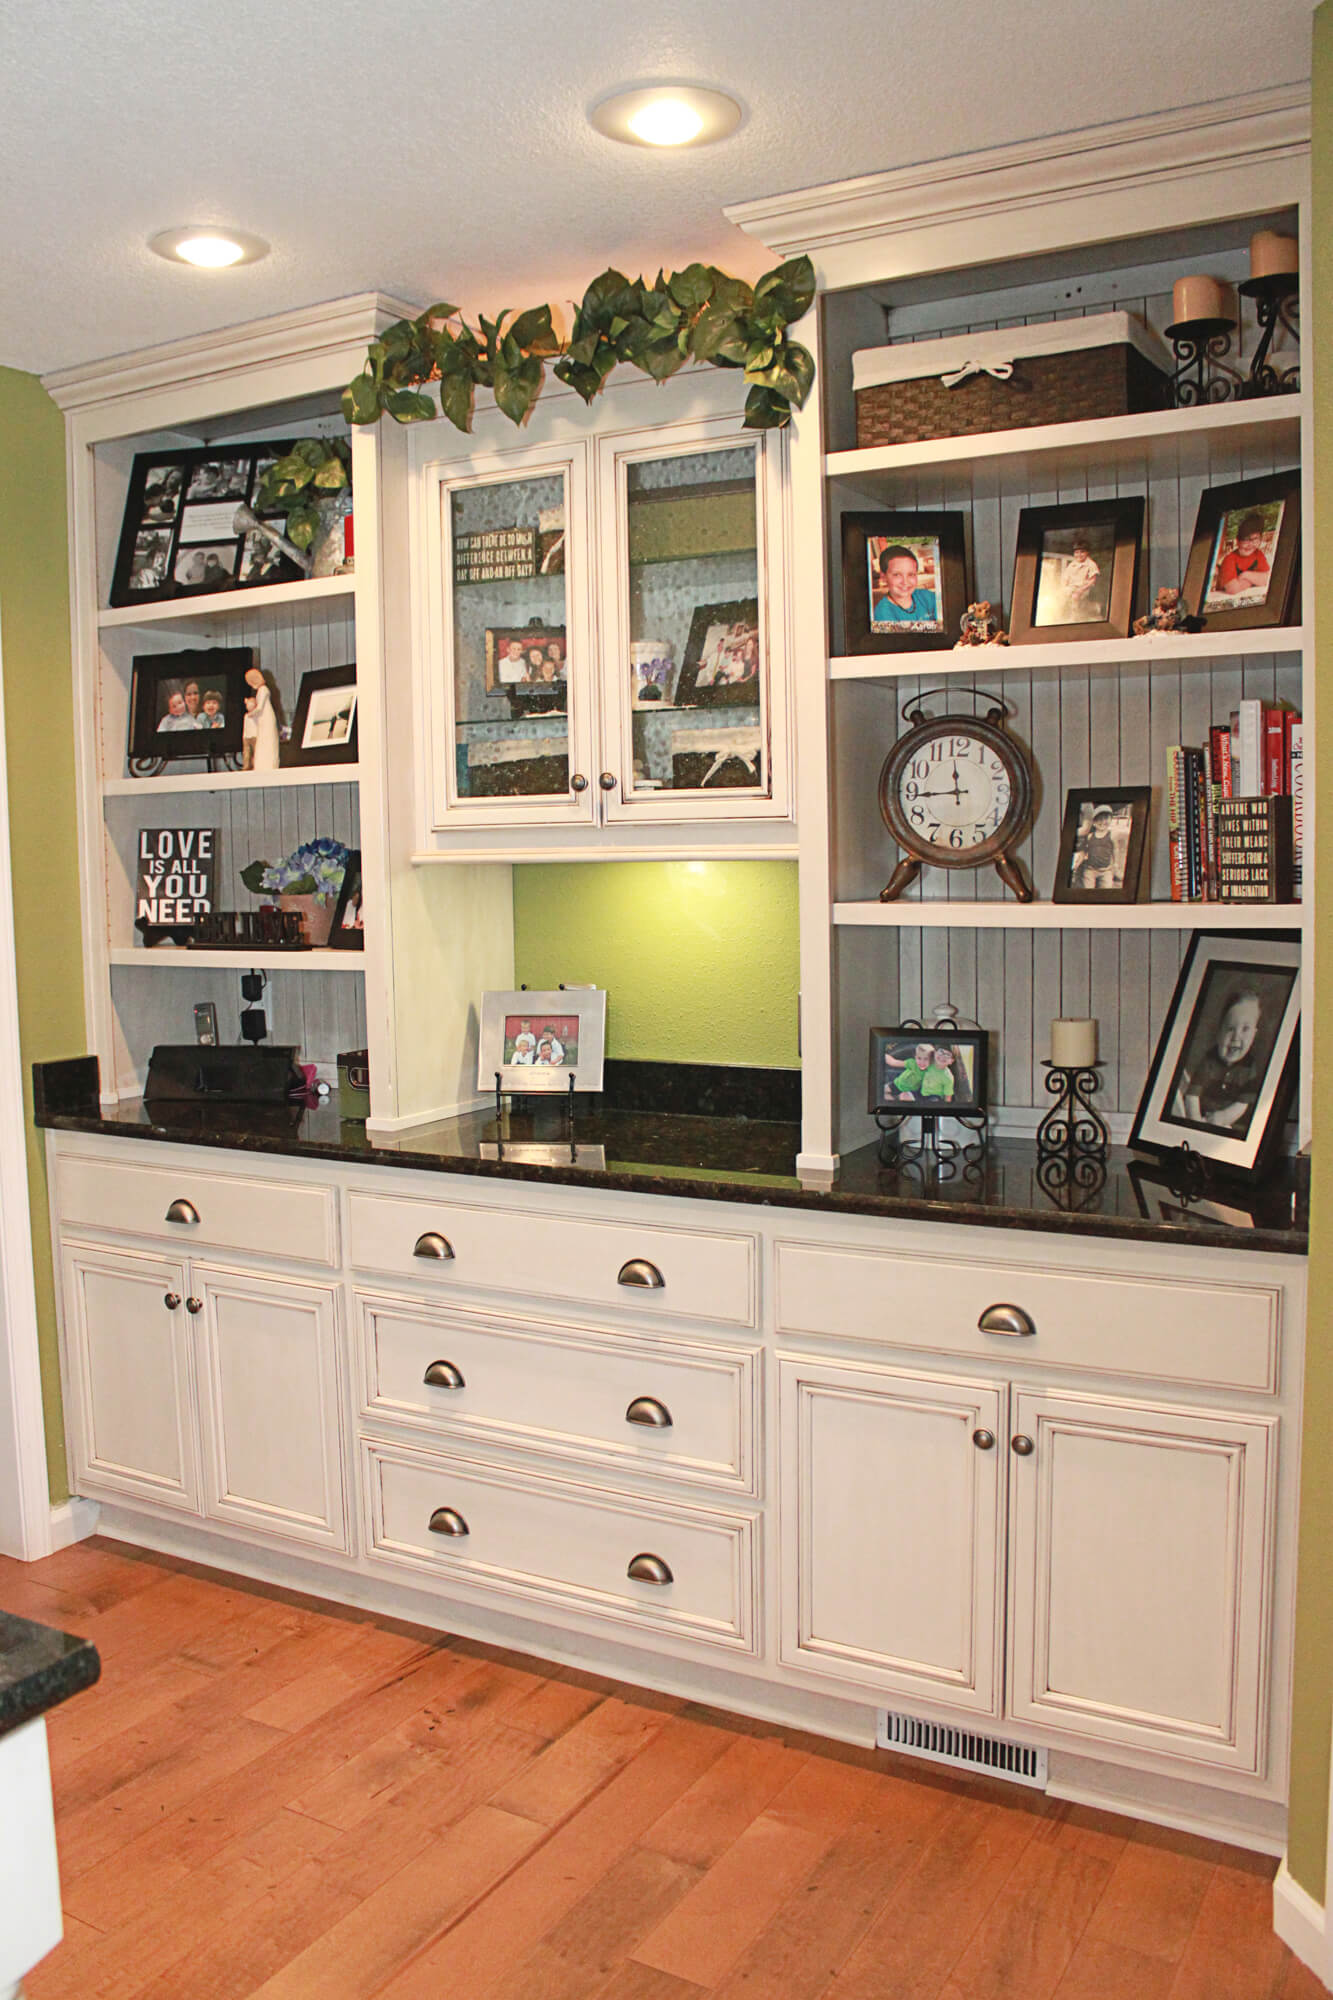 custom-kitchen-cabinet-painted-10